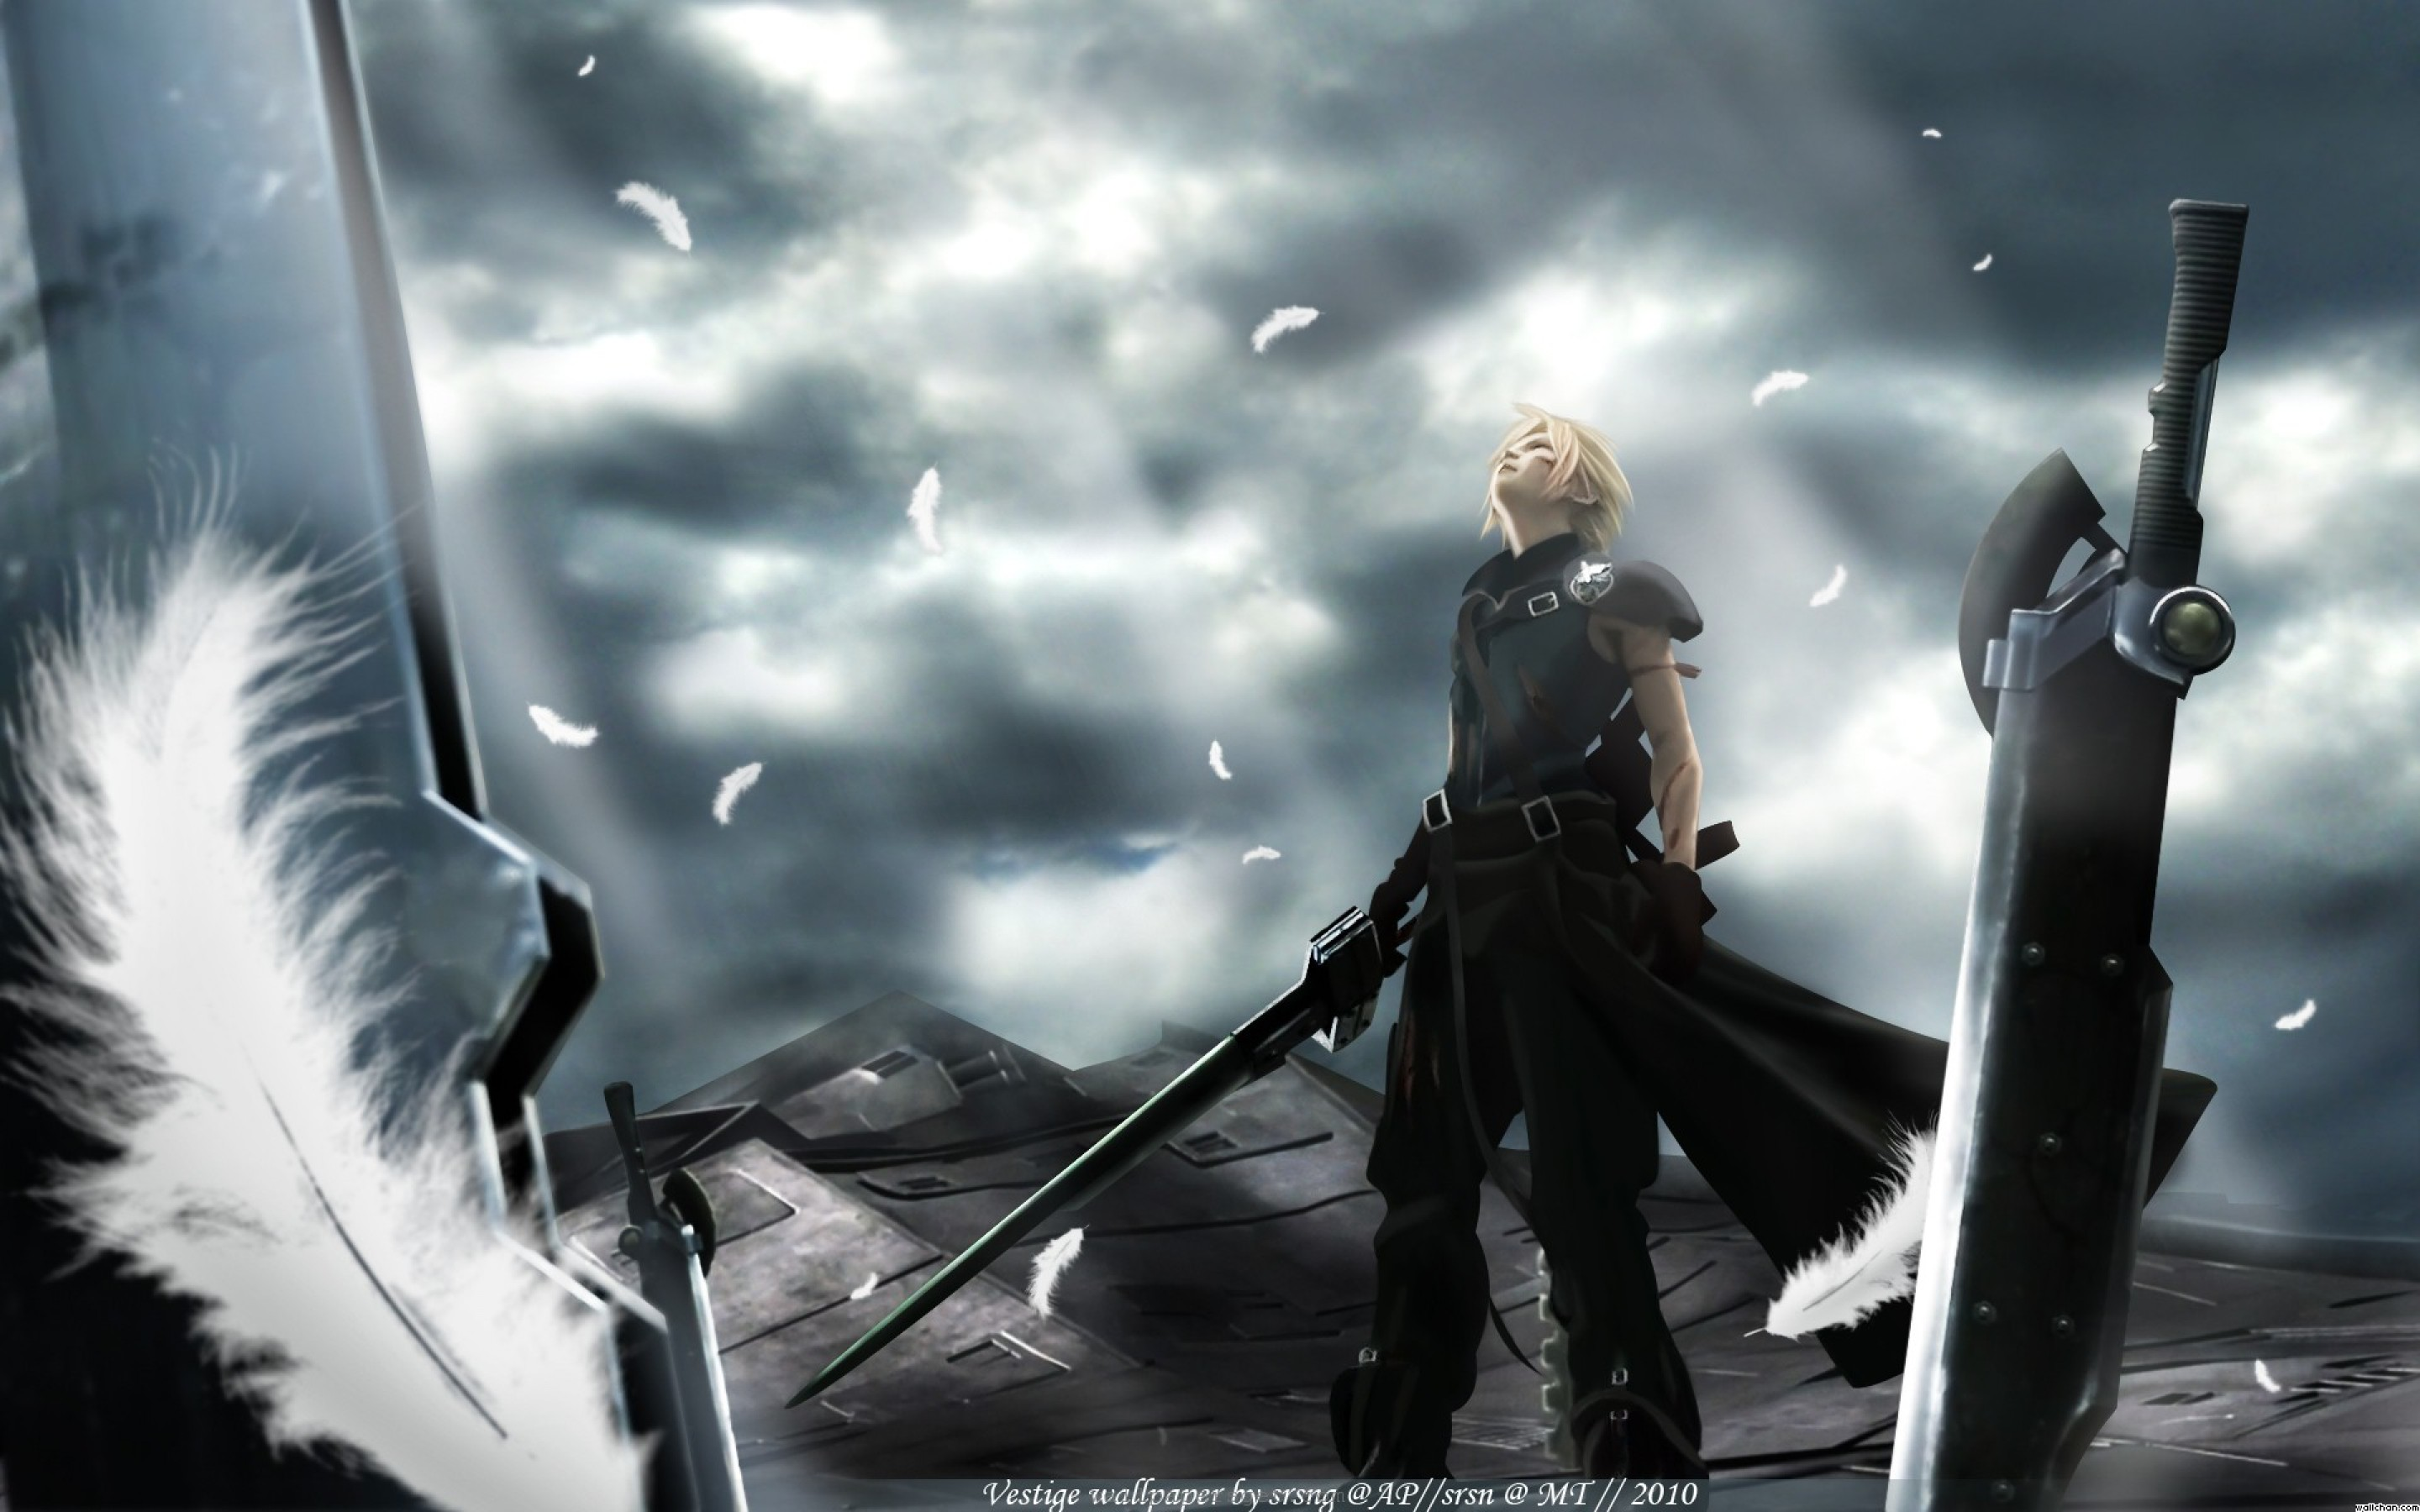 Final Fantasy Anime Wallpaper Picture 23 1650 Wallpaper 2880x1800